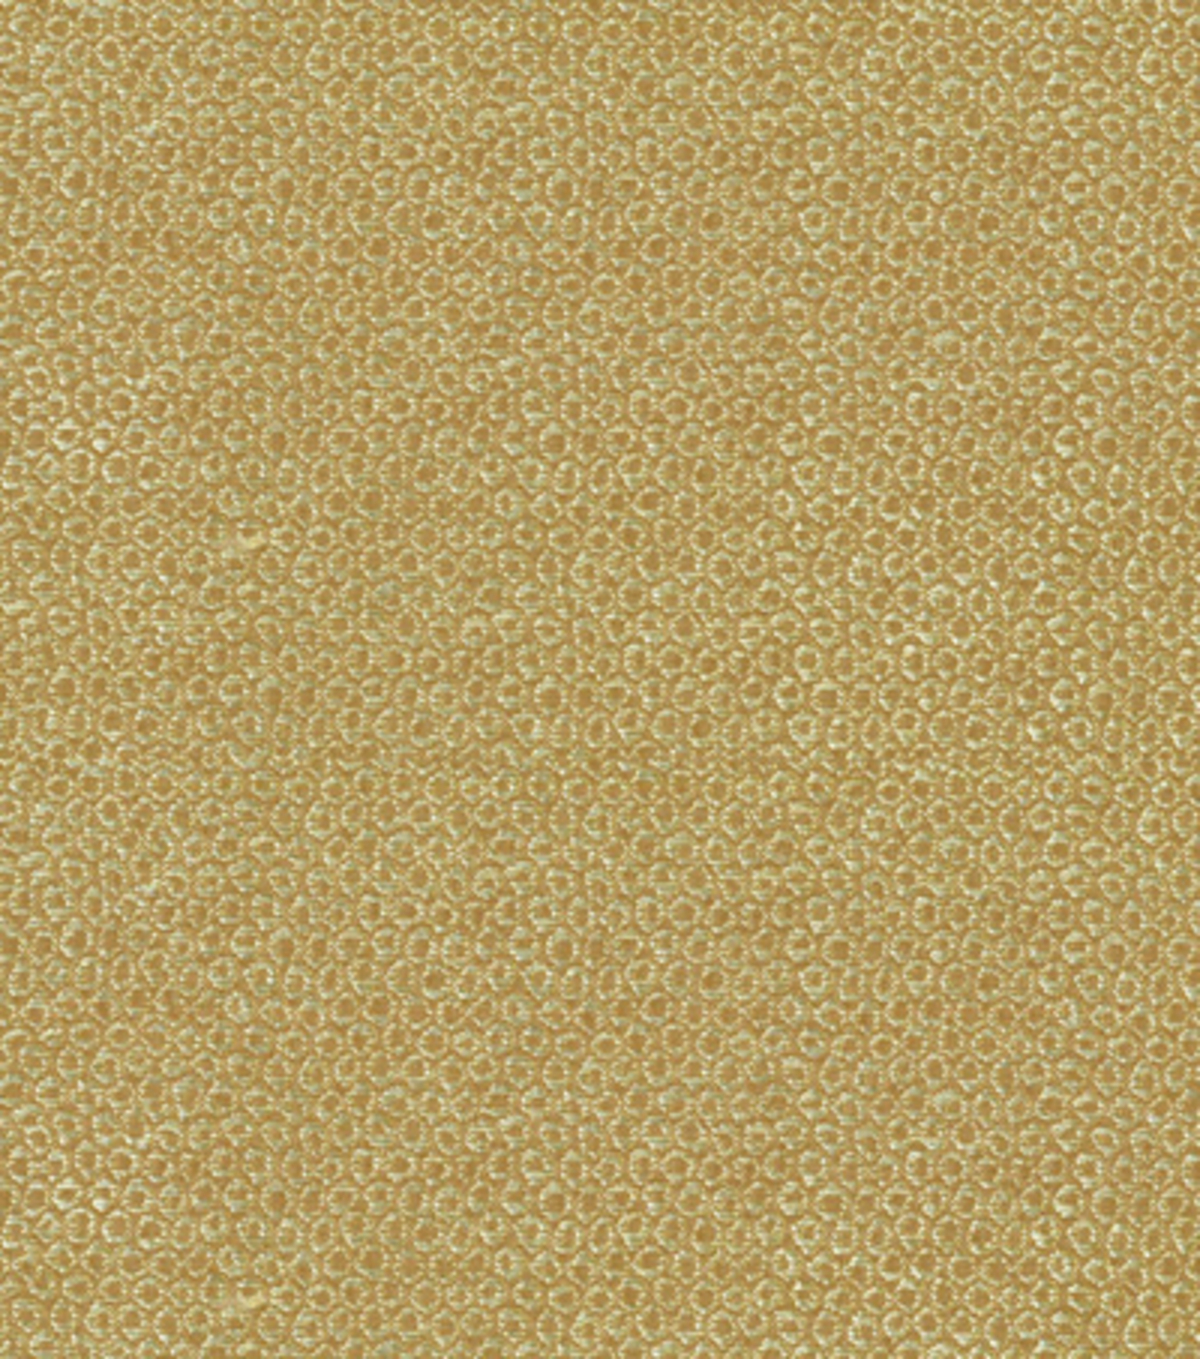 Home Decor 8\u0022x8\u0022 Fabric Swatch-HGTV HOME Gilty Pleasure Gold